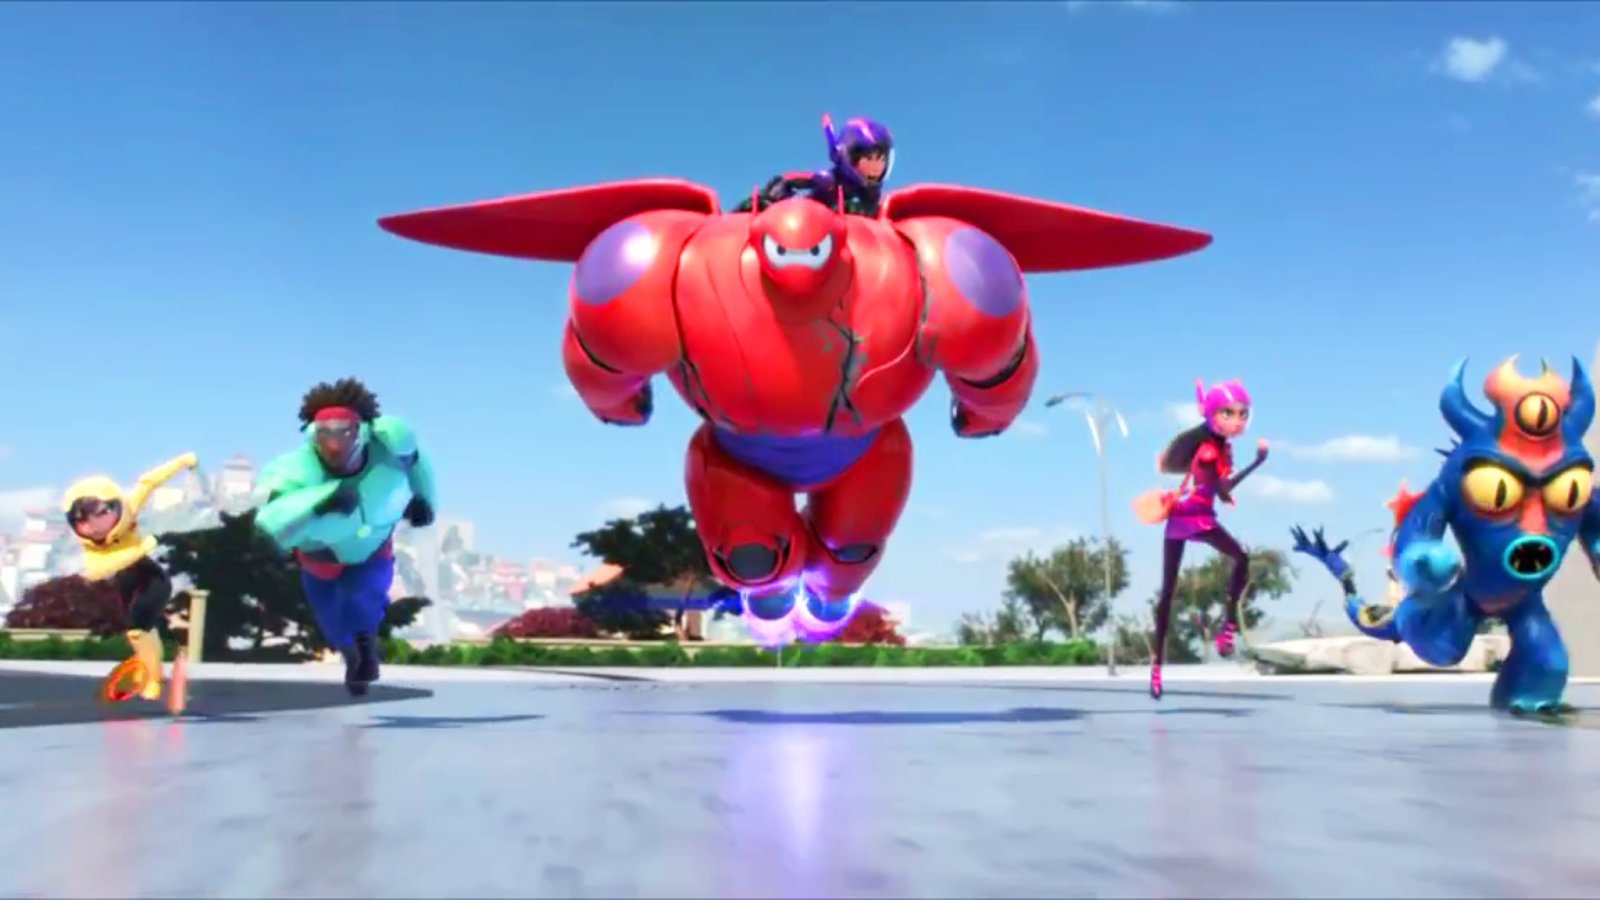 big hero 6 walt disney 2014 still screencaps personajes characters fredzilla baymax hiro hamada honey lemon gogo tomago wasabi no ginger